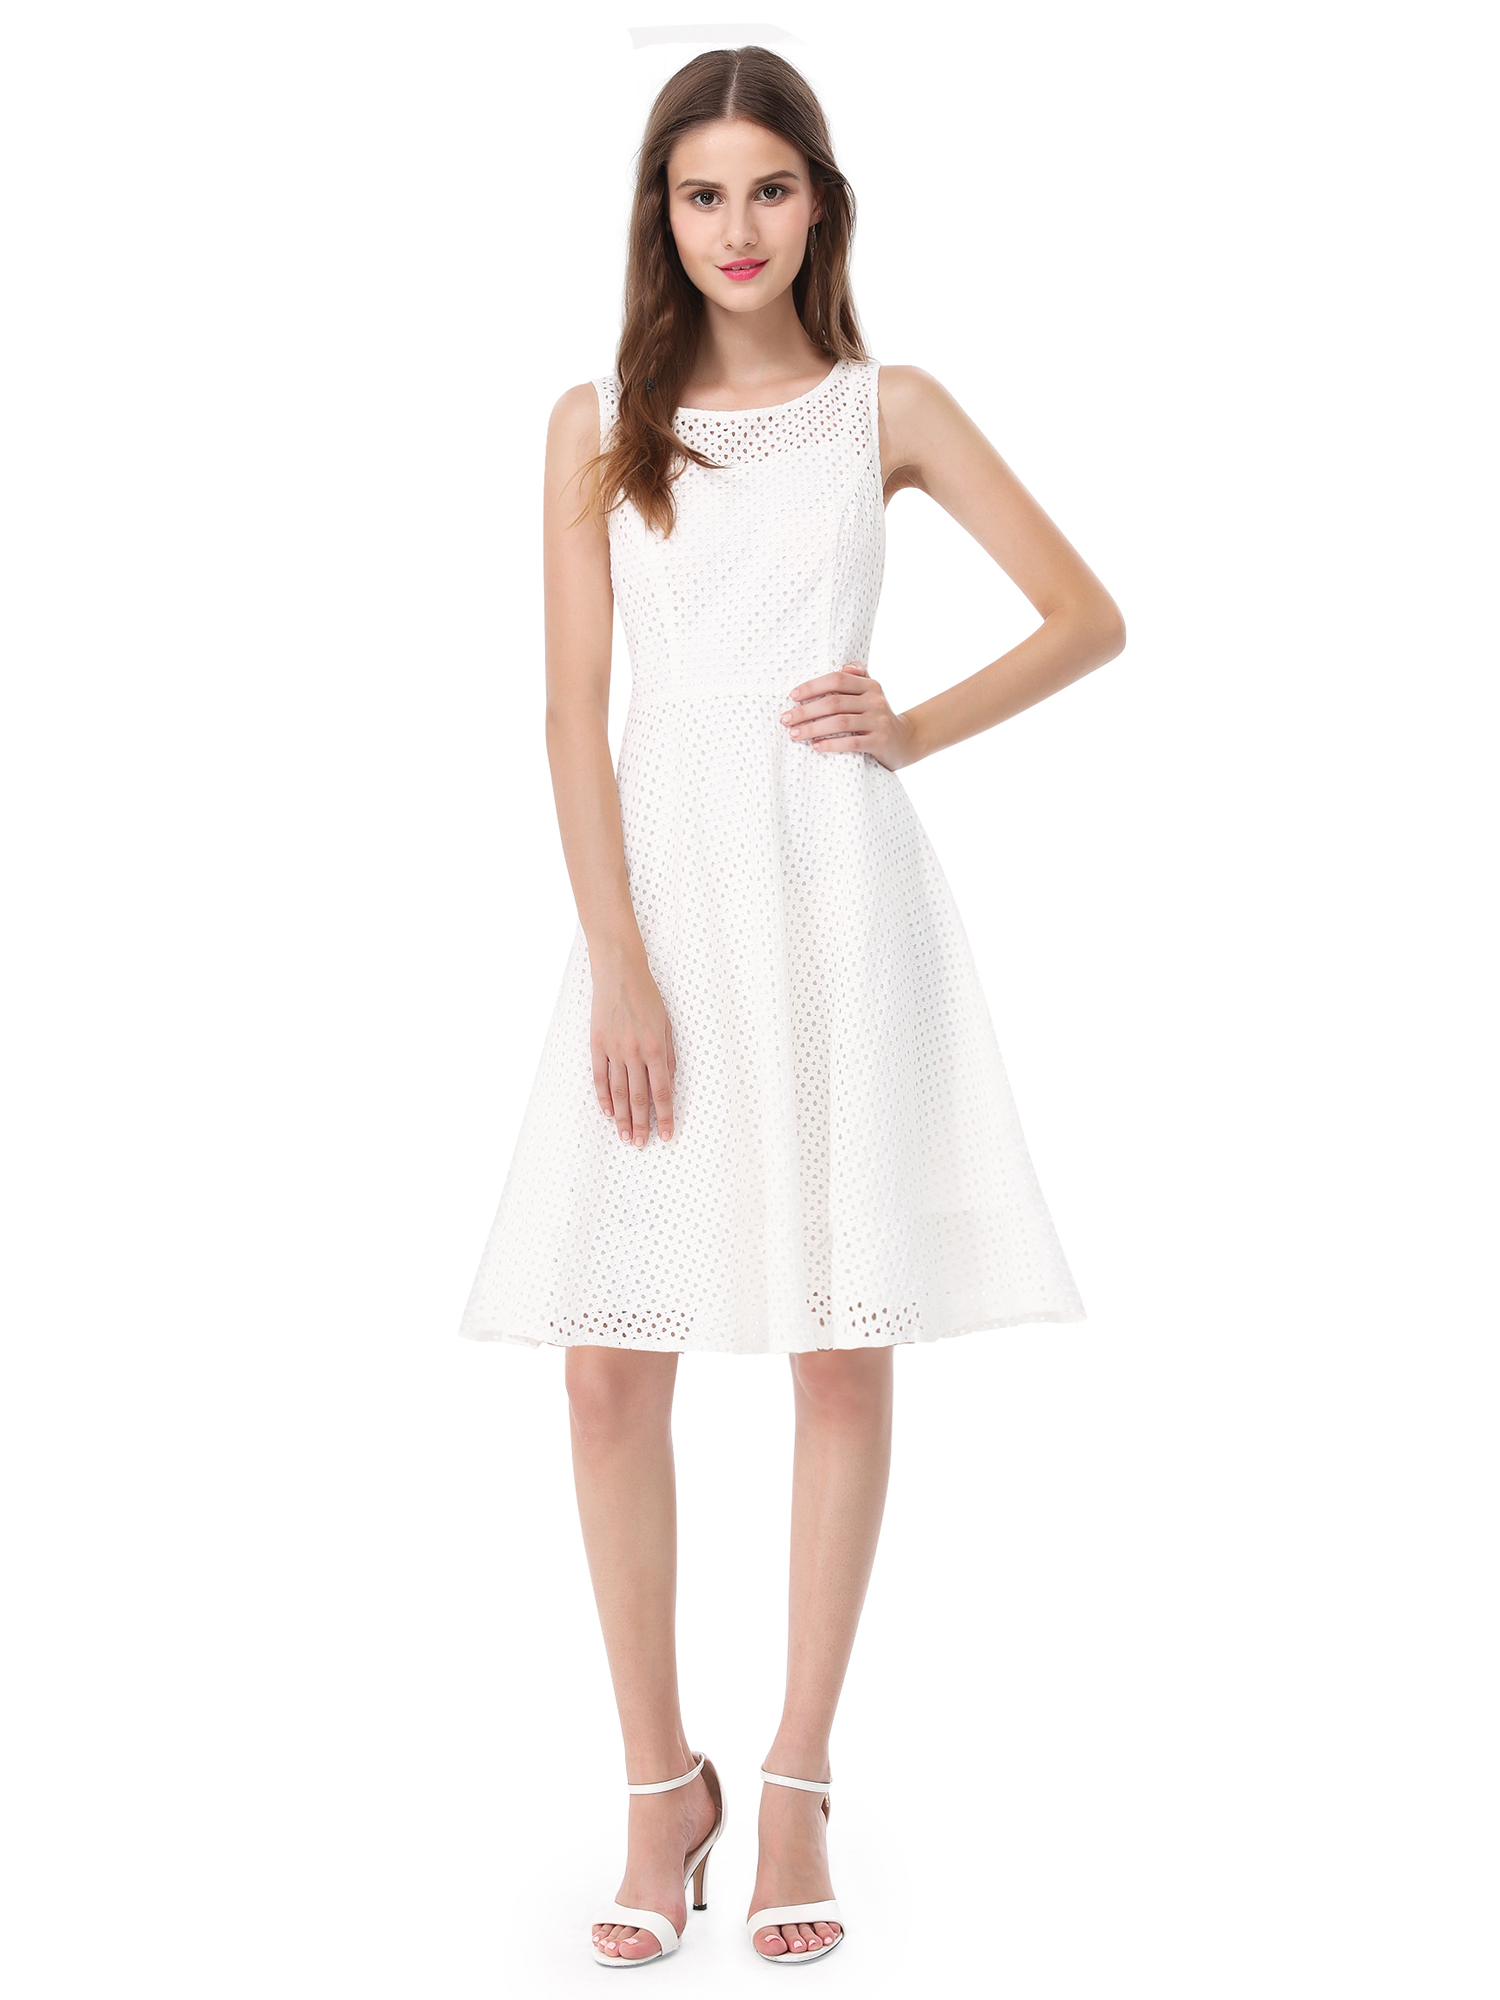 Alisapan White Casual Dresses Summer Beach Cocktail Party ...